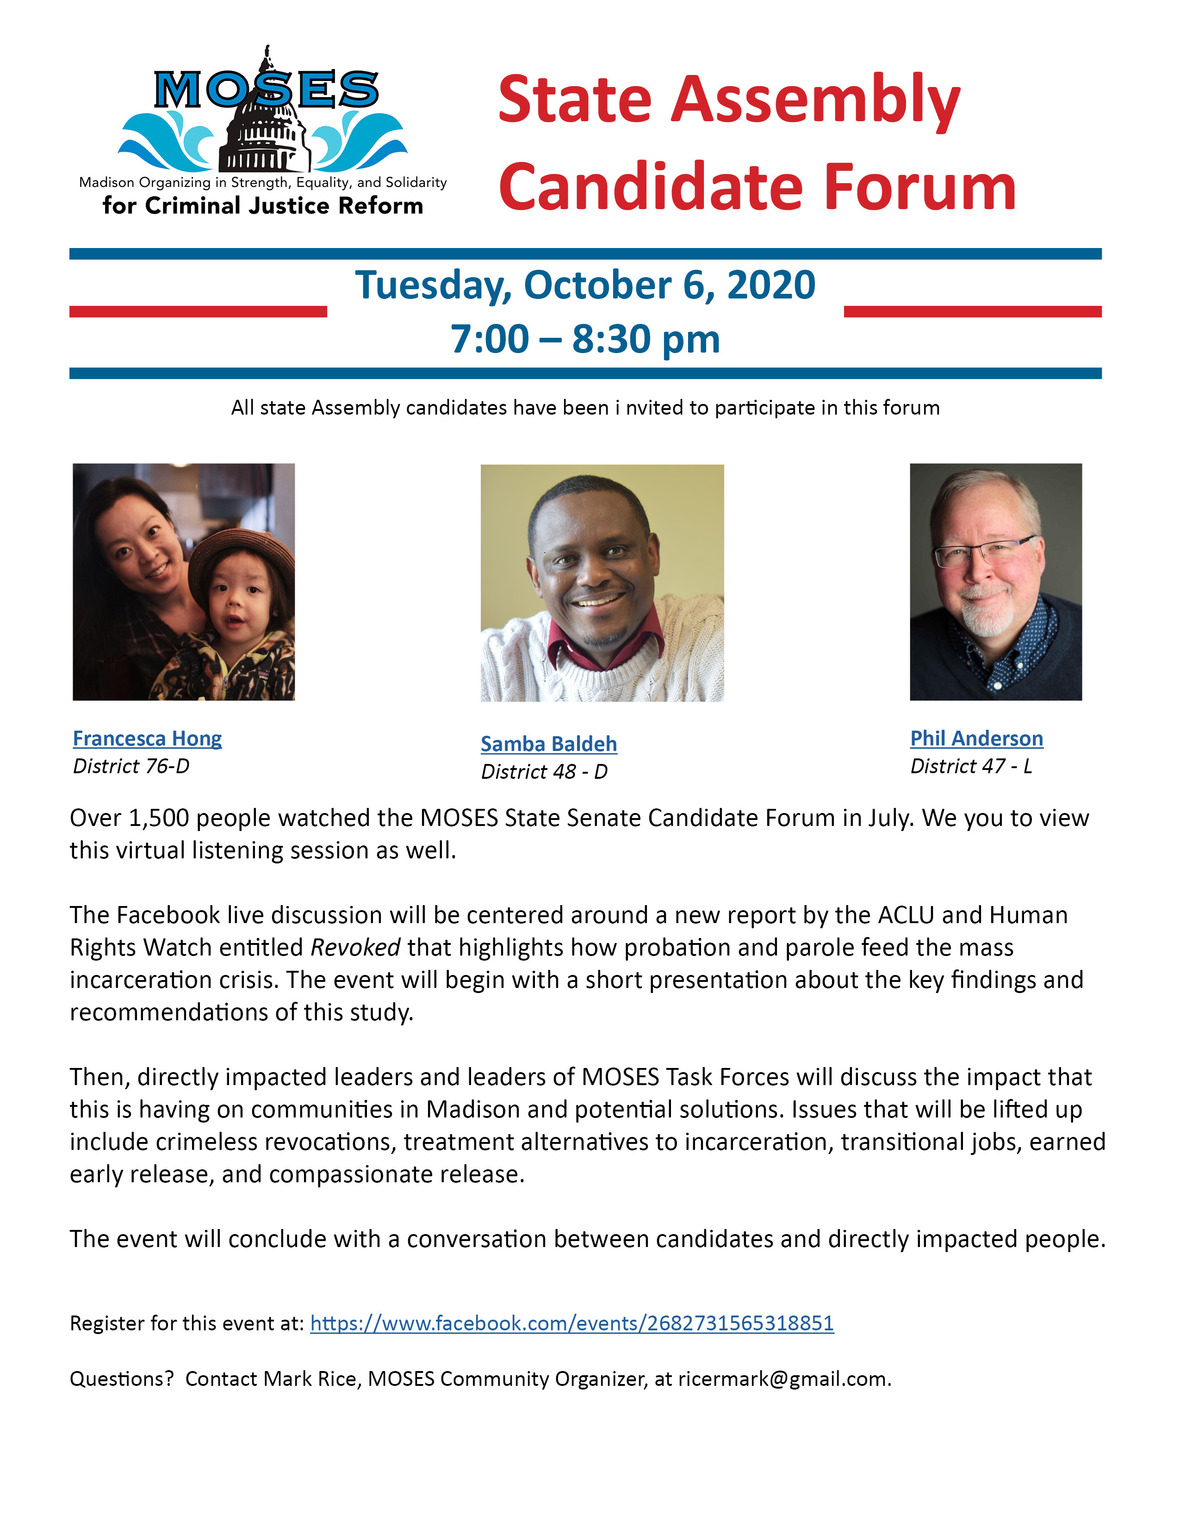 Assembly Candidate Forum October 2020